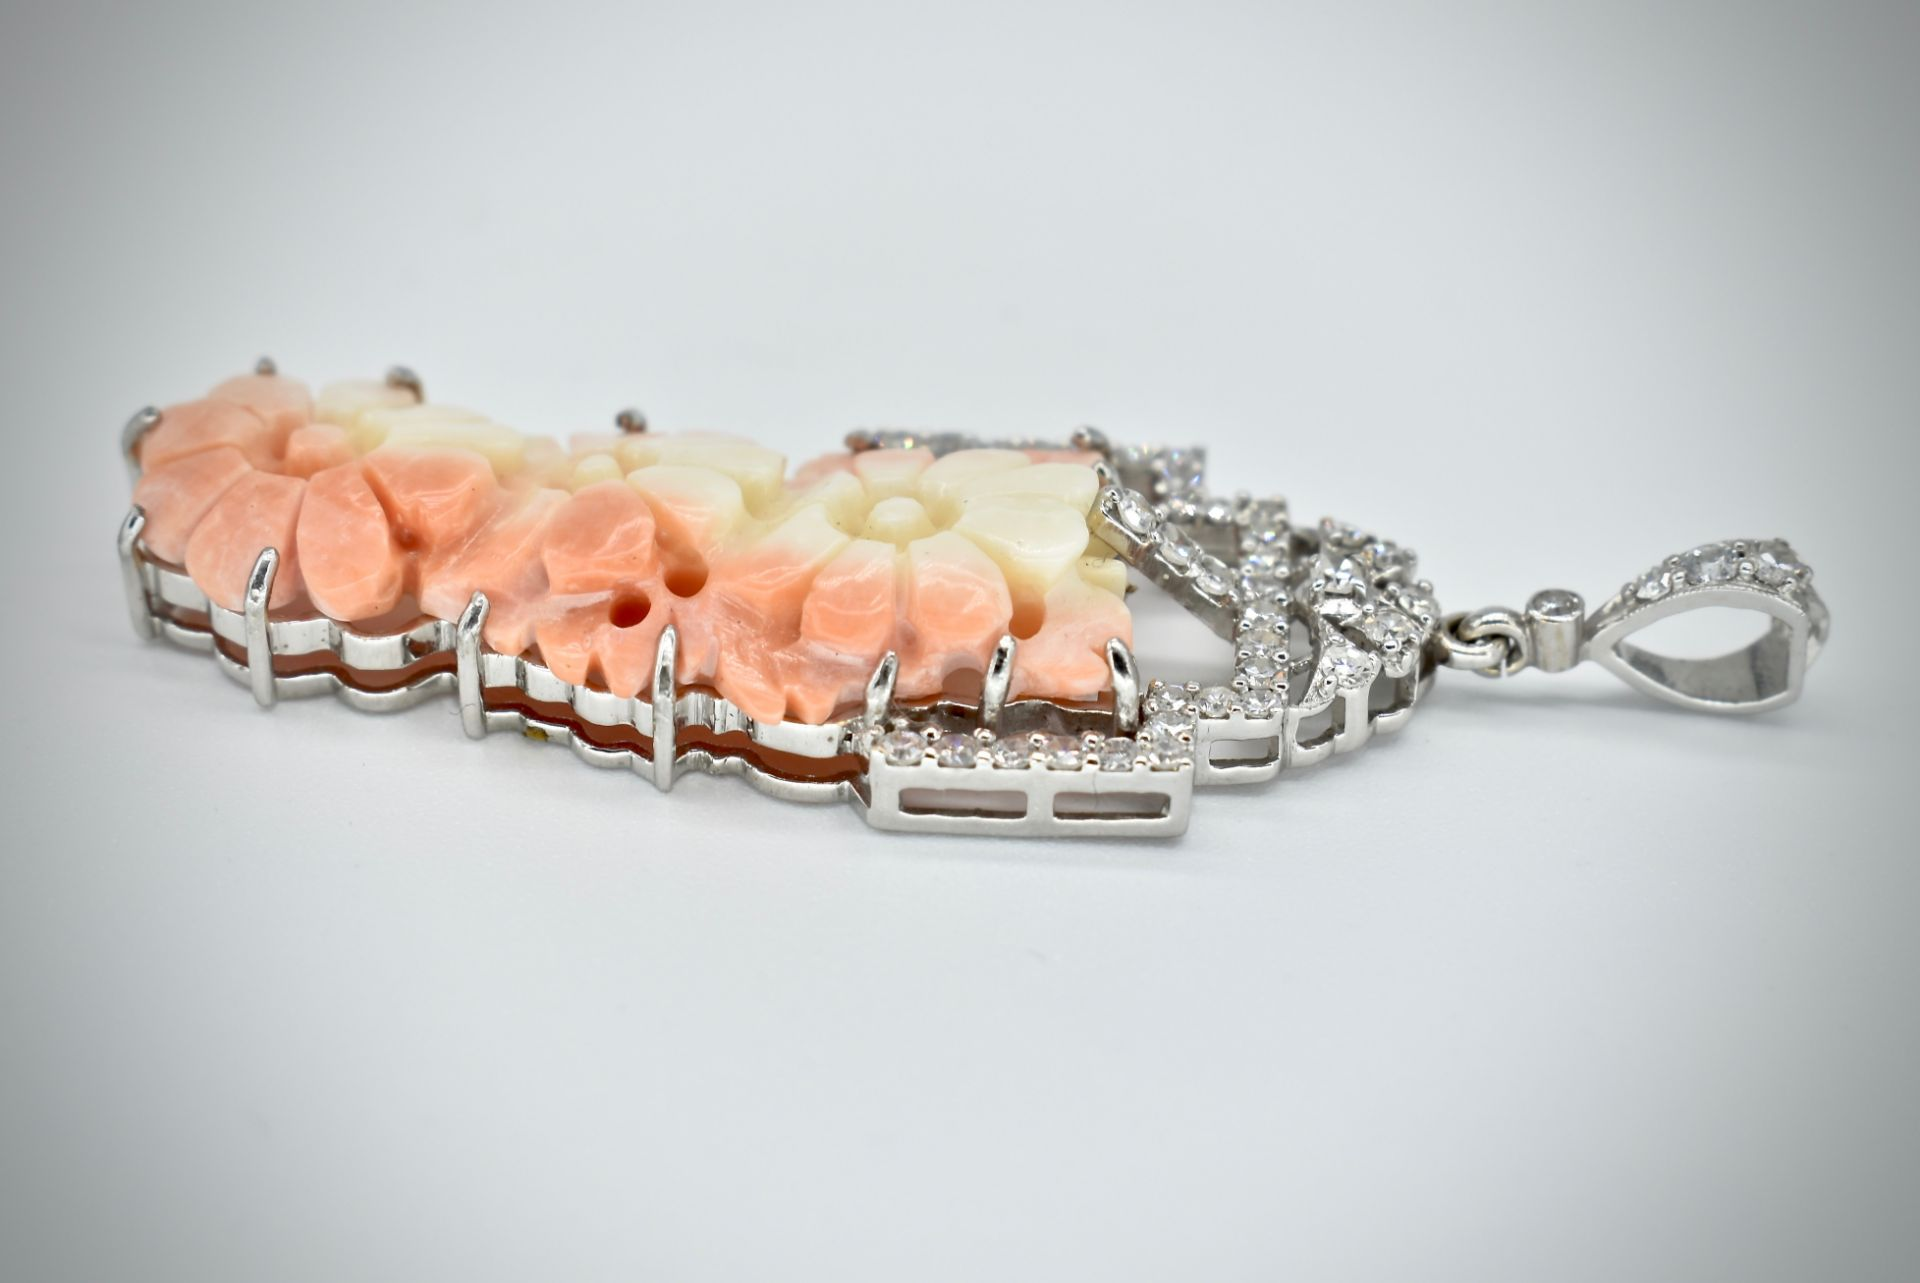 18ct Gold Coral & Diamond Necklace Pendant - Image 2 of 5